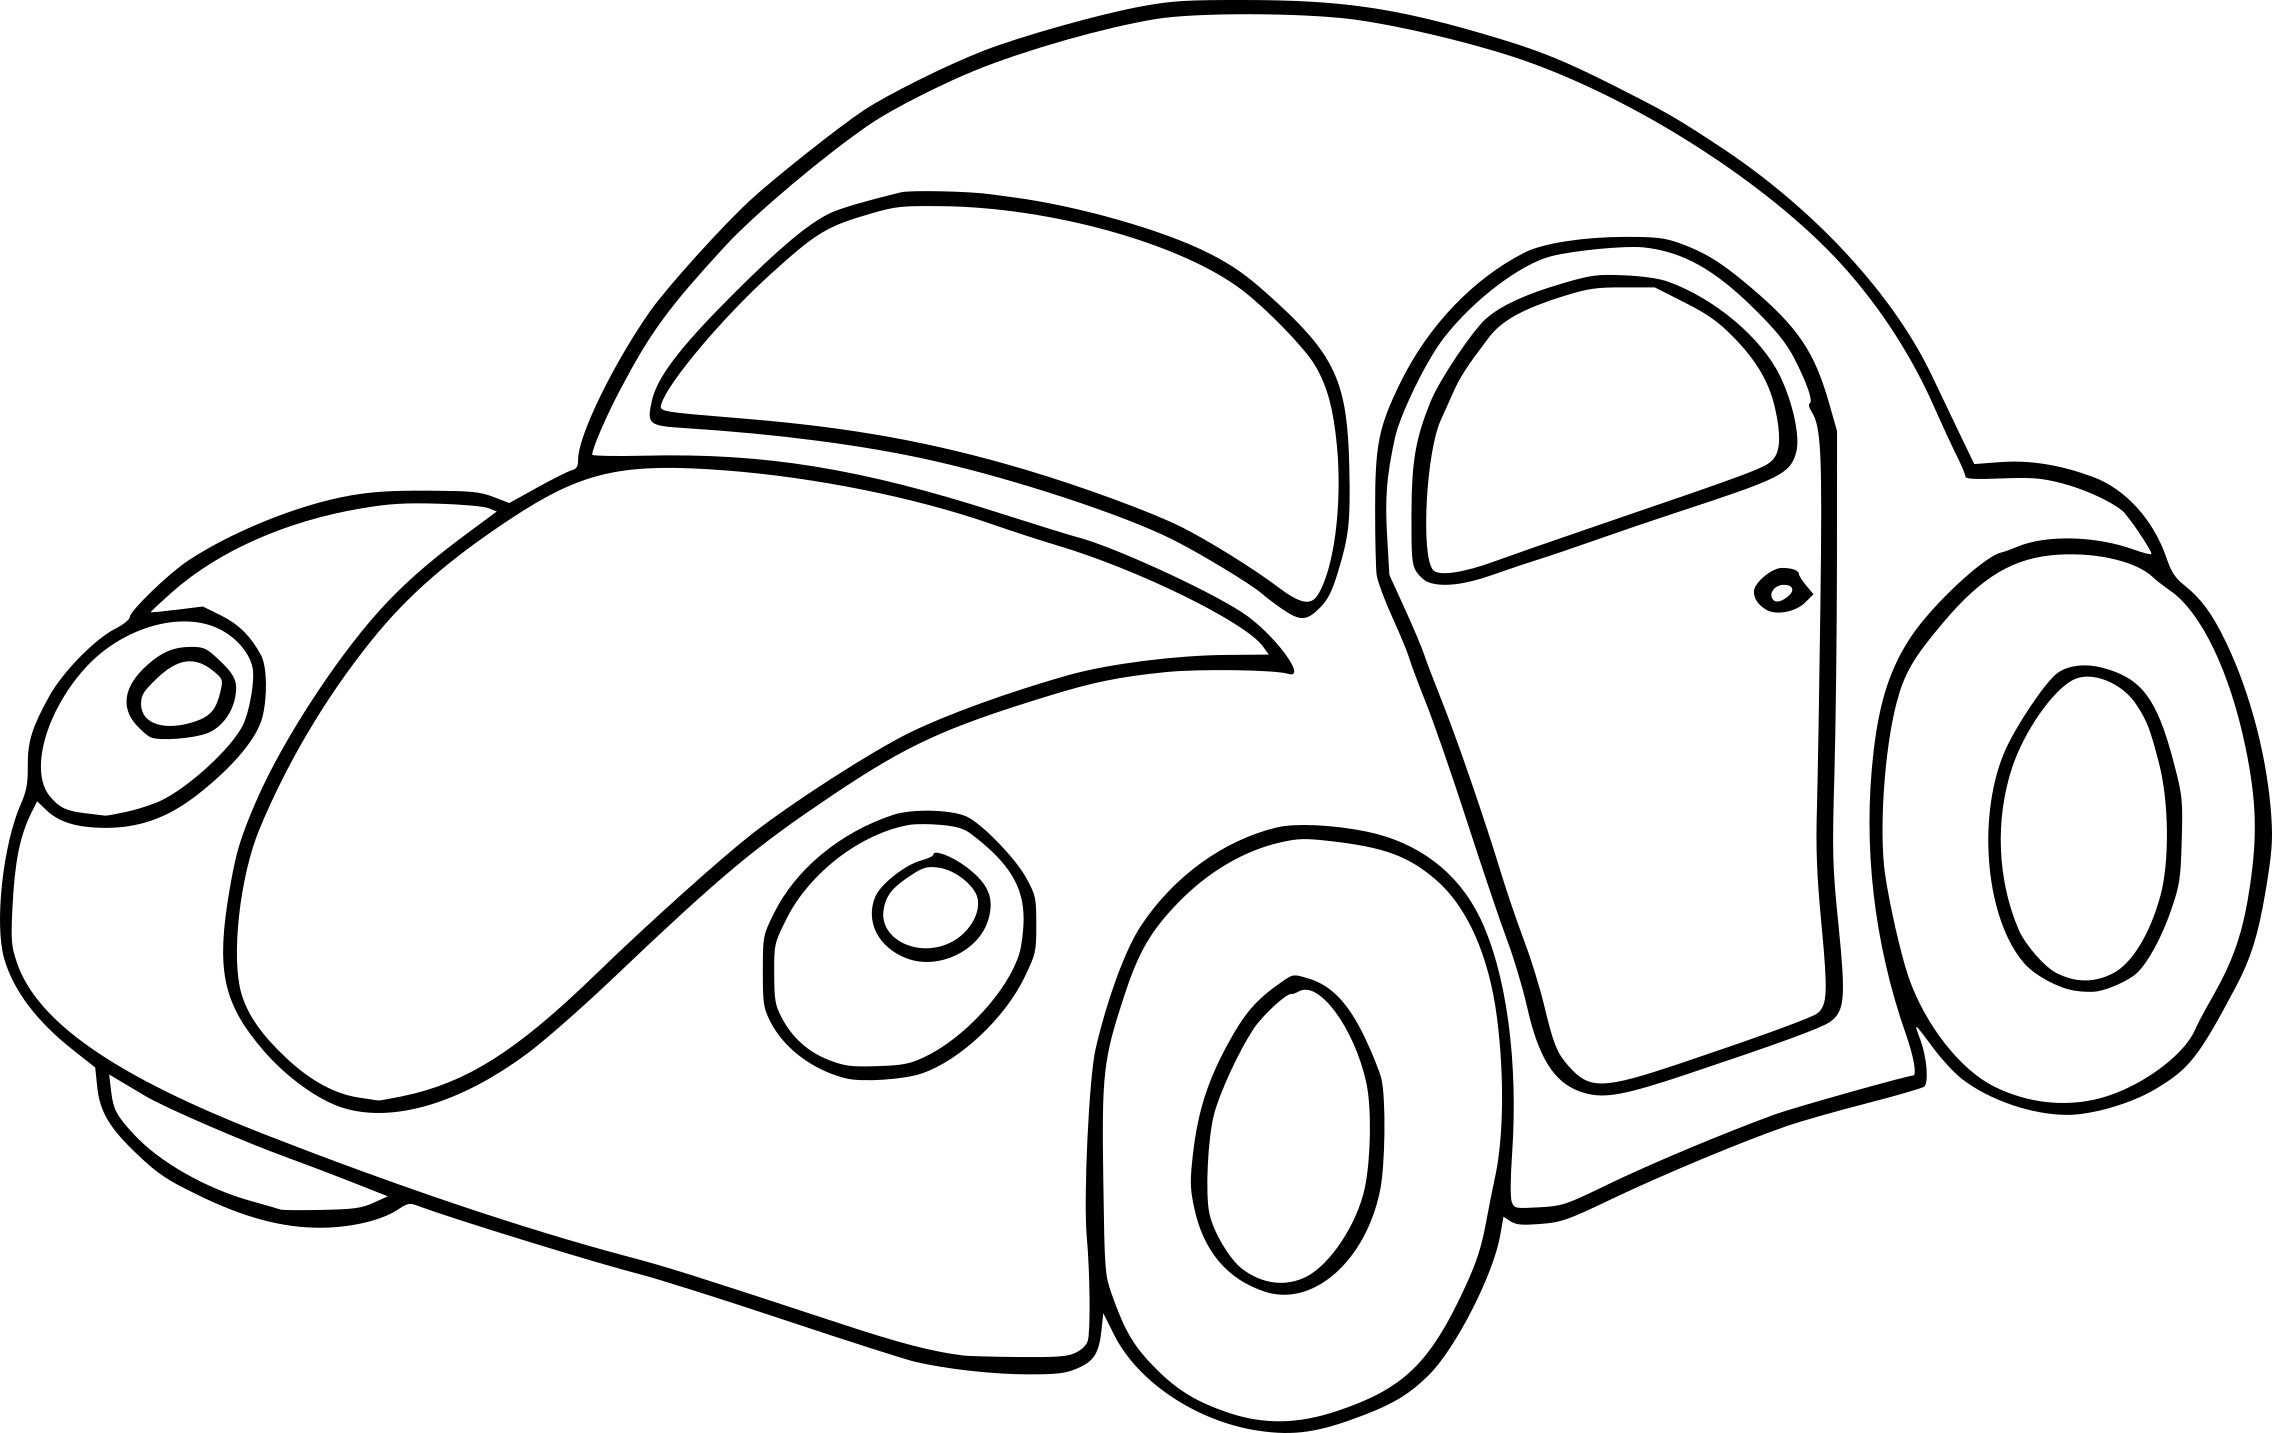 coloriage voiture automobile dessin imprimer sur coloriages info. Black Bedroom Furniture Sets. Home Design Ideas